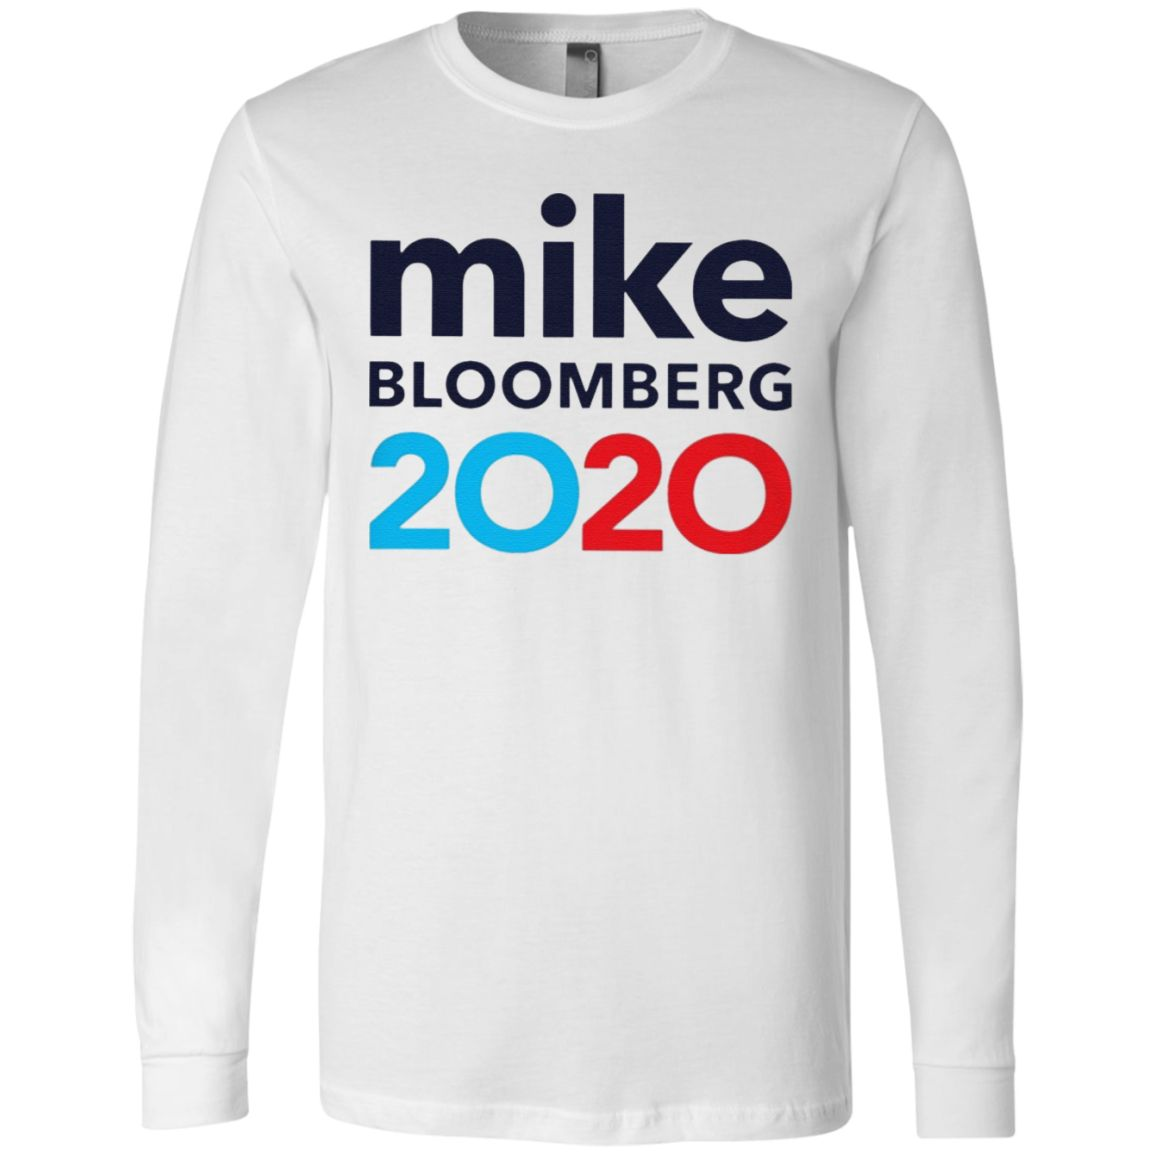 mike bloomberg 2020 t shirt